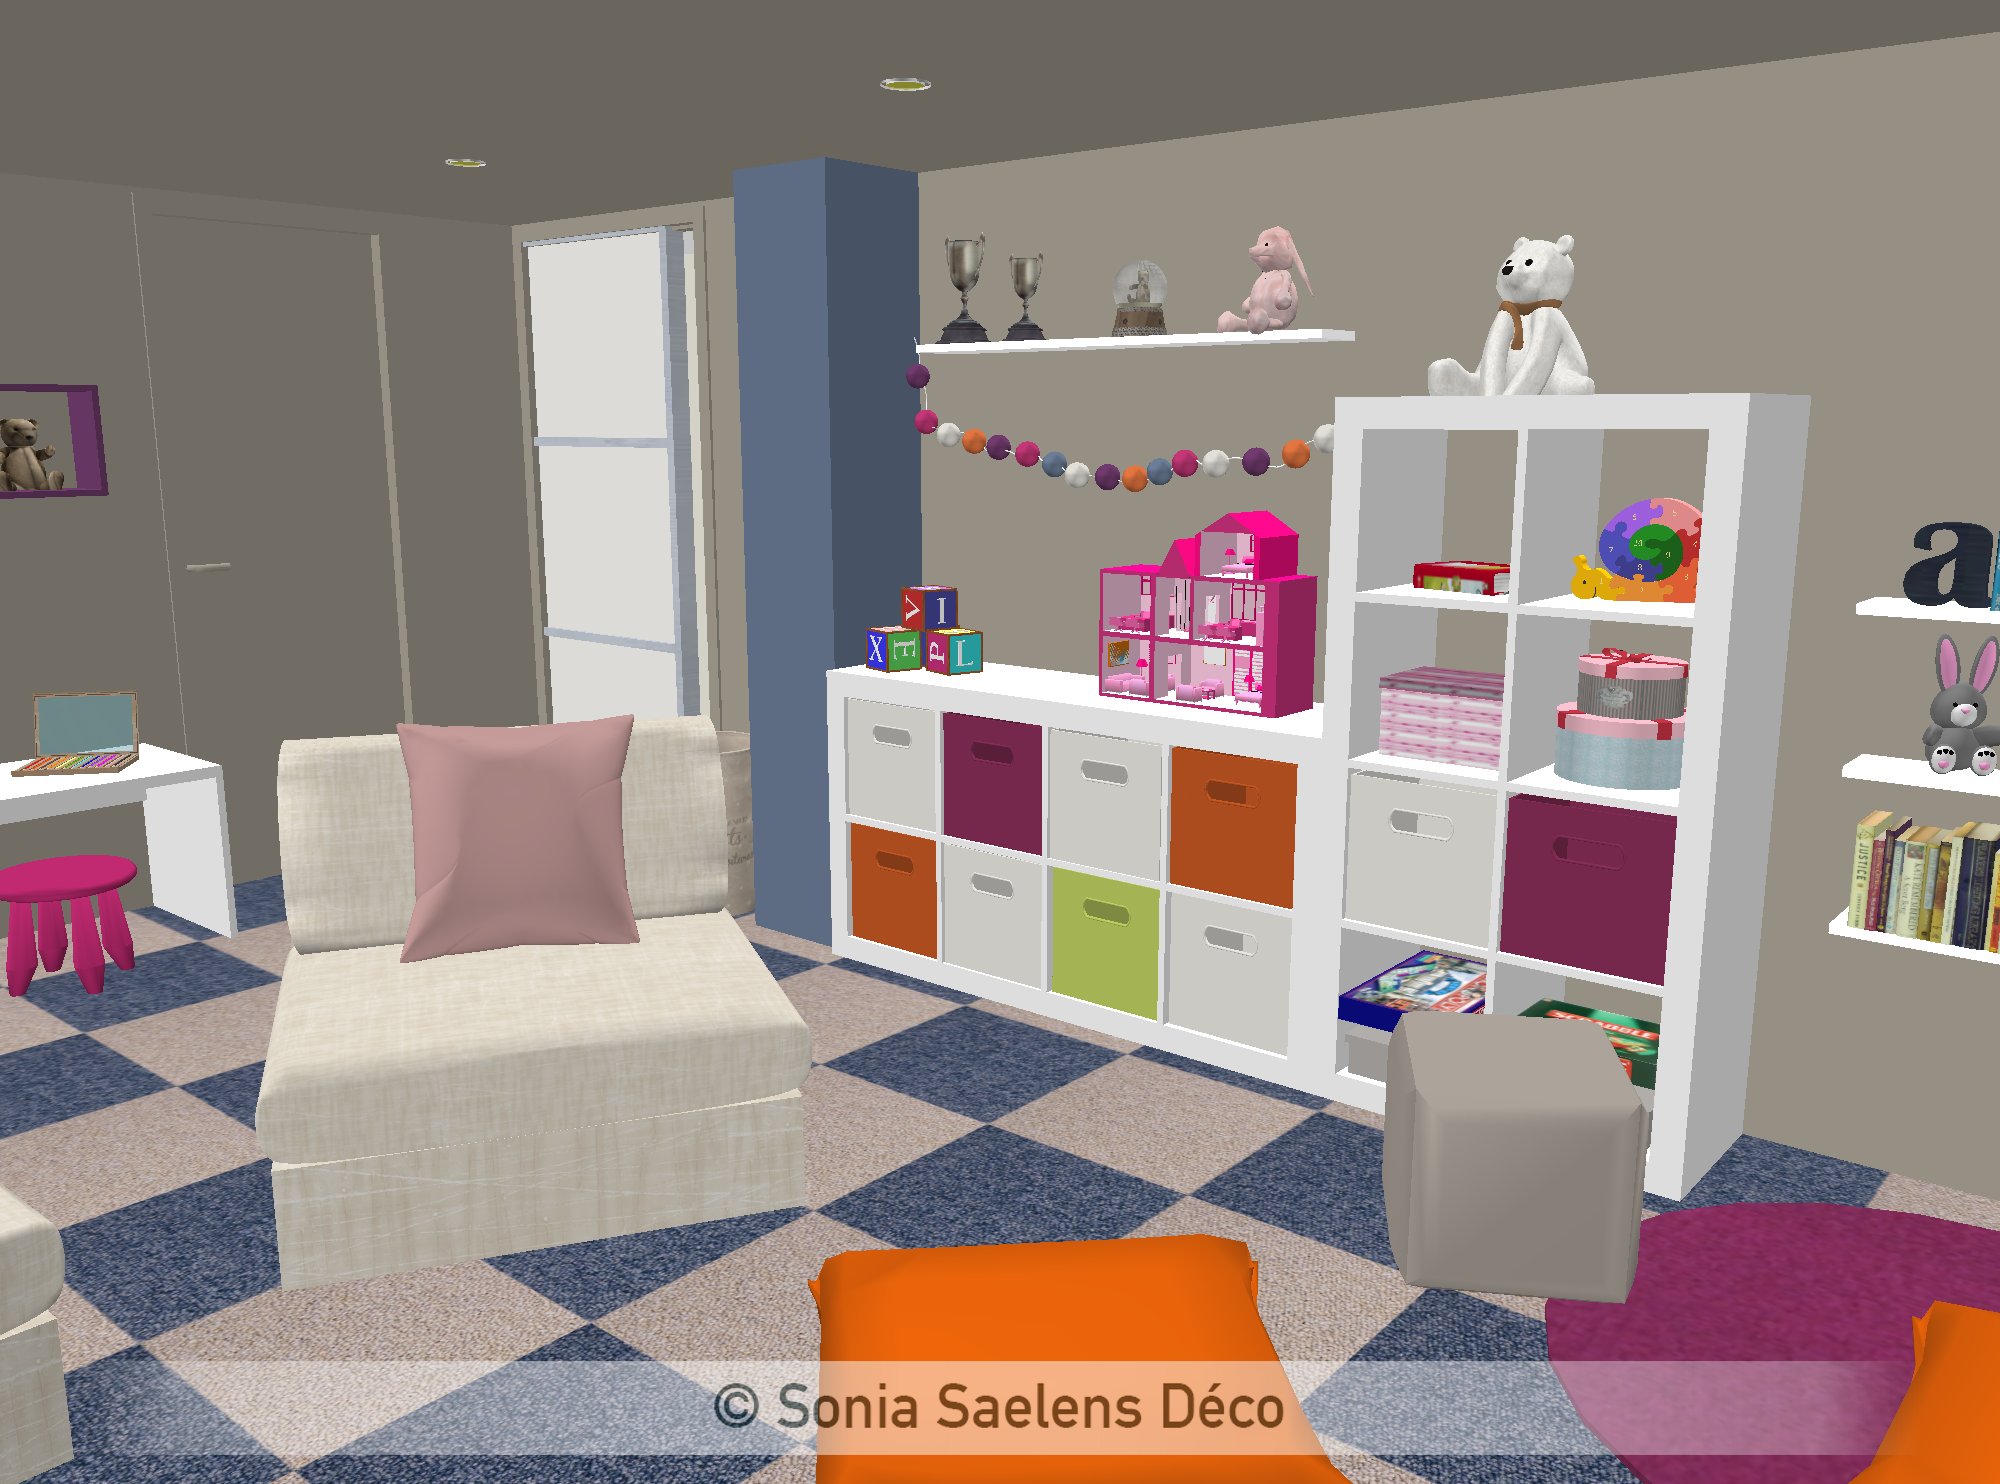 jeux de maison 3d elegant simulation de plan maison on decoration d interieur moderne. Black Bedroom Furniture Sets. Home Design Ideas